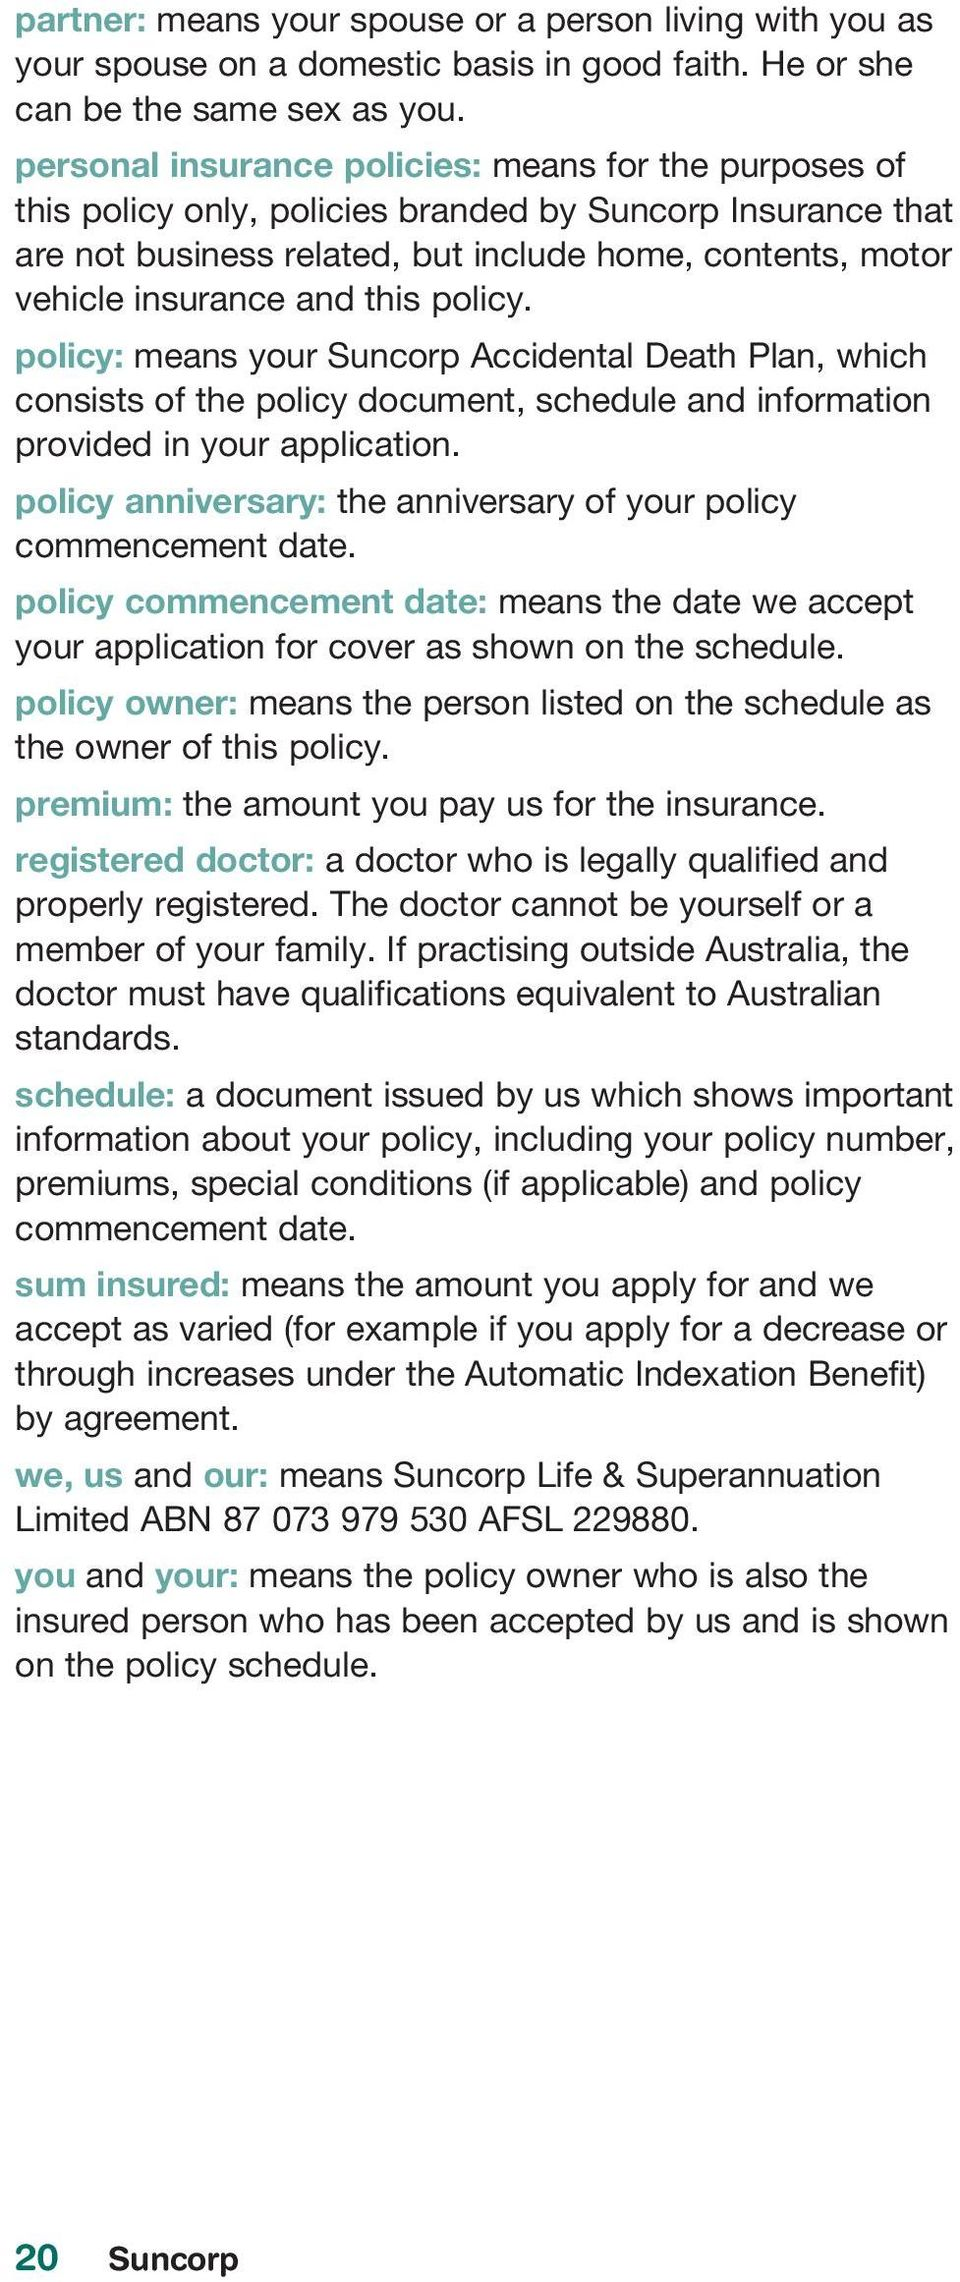 this policy. policy: means your Suncorp Accidental Death Plan, which consists of the policy document, schedule and information provided in your application.